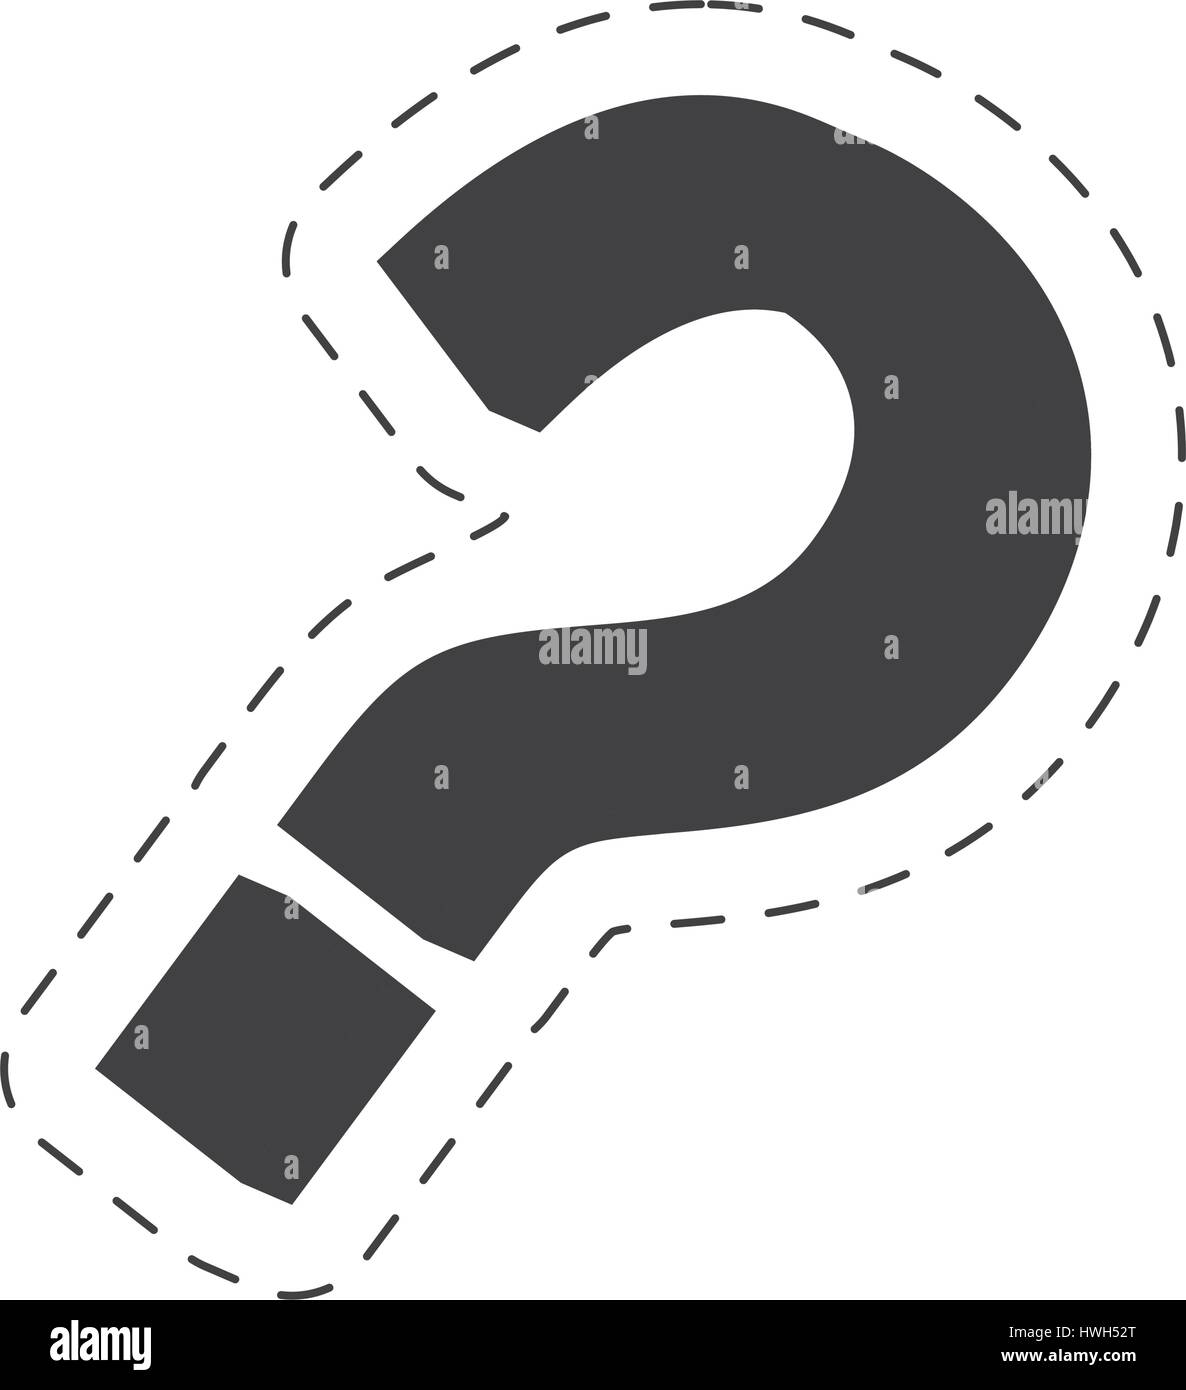 question mark image black - Stock Image